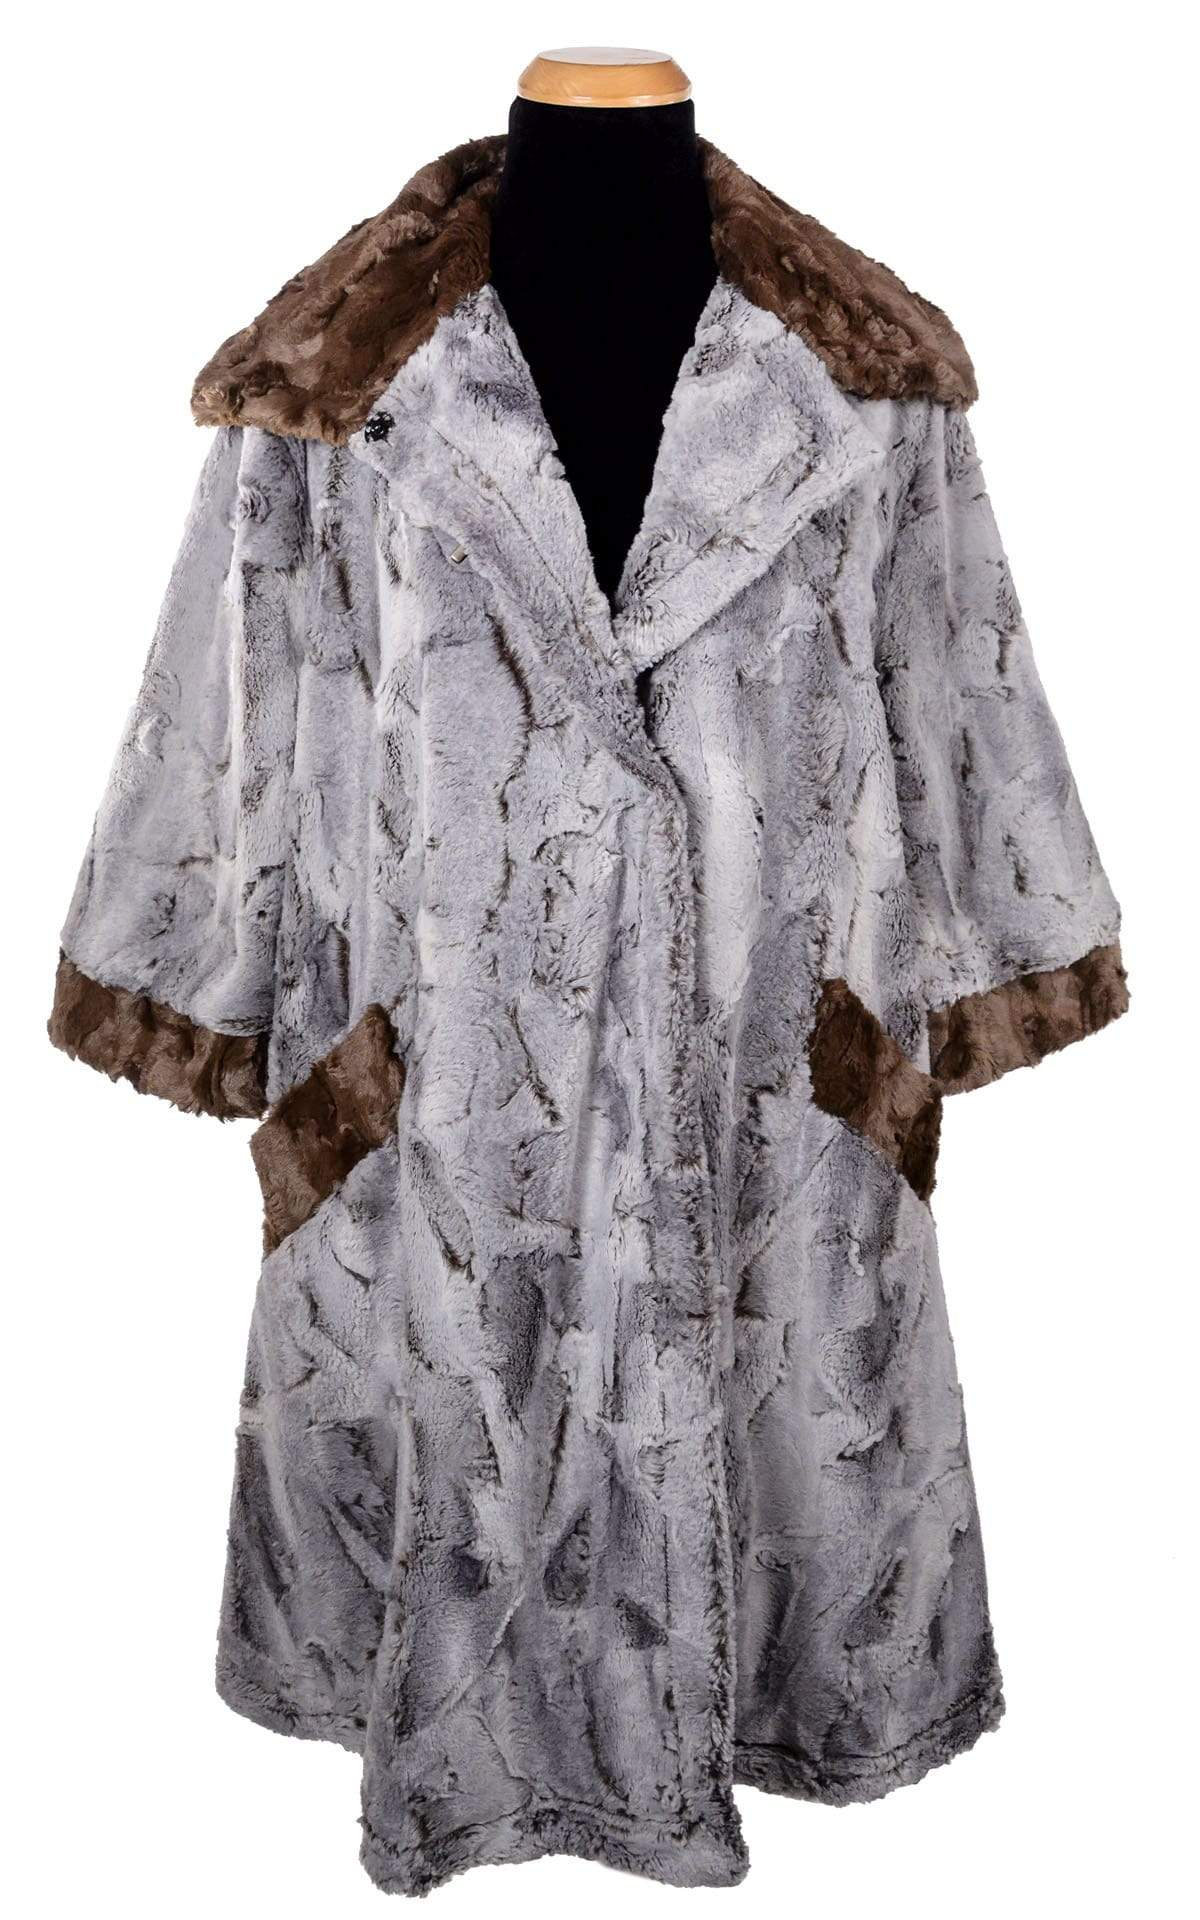 Crawford Coat - Luxury Faux Fur in Giant's Causeway with Cuddly Fur in Chocolate